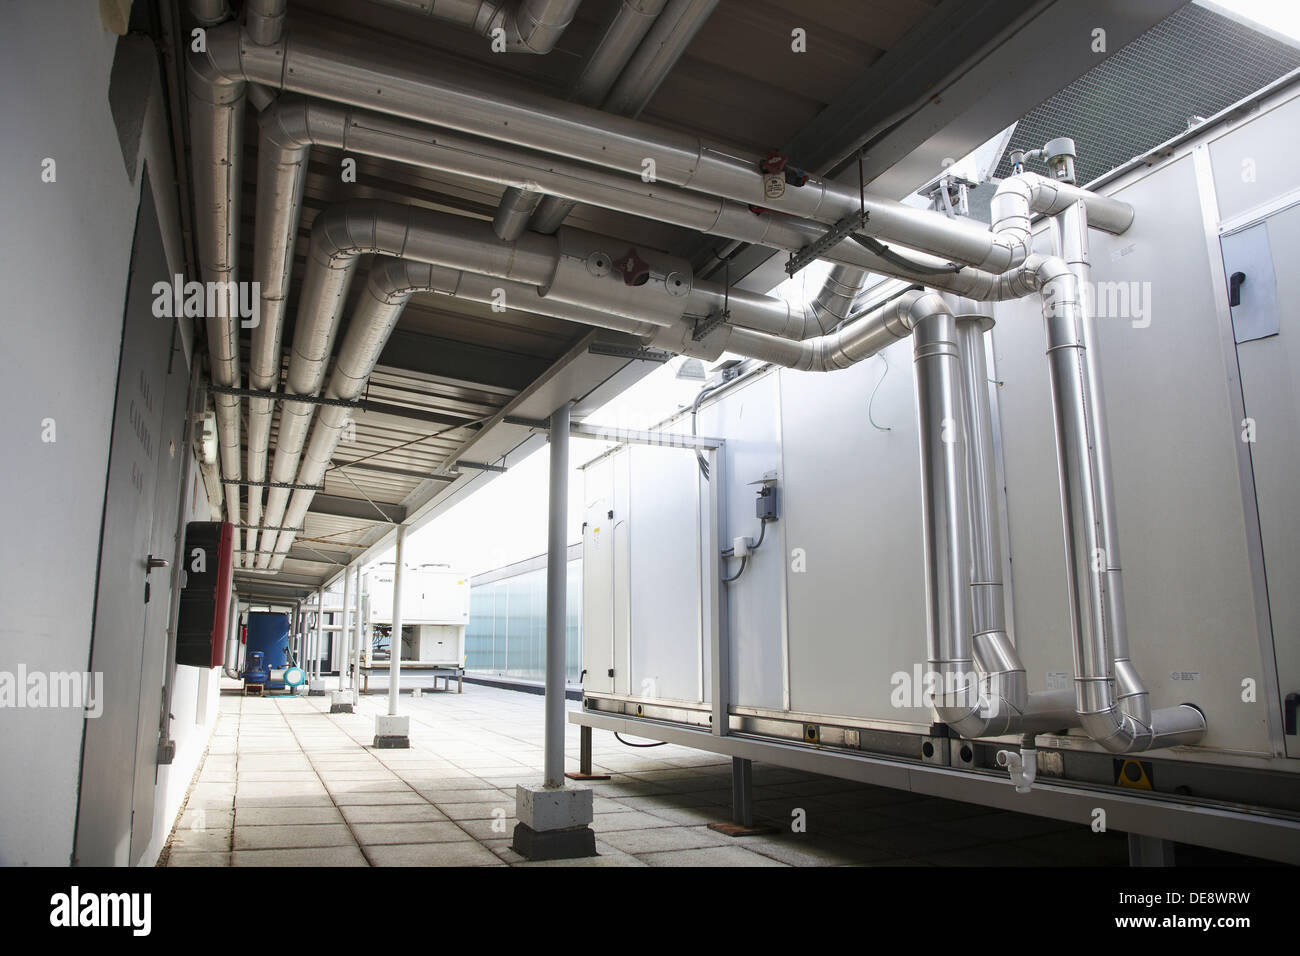 Air conditioning Industrial Installation On Roof Of Building Stock  #464B5C